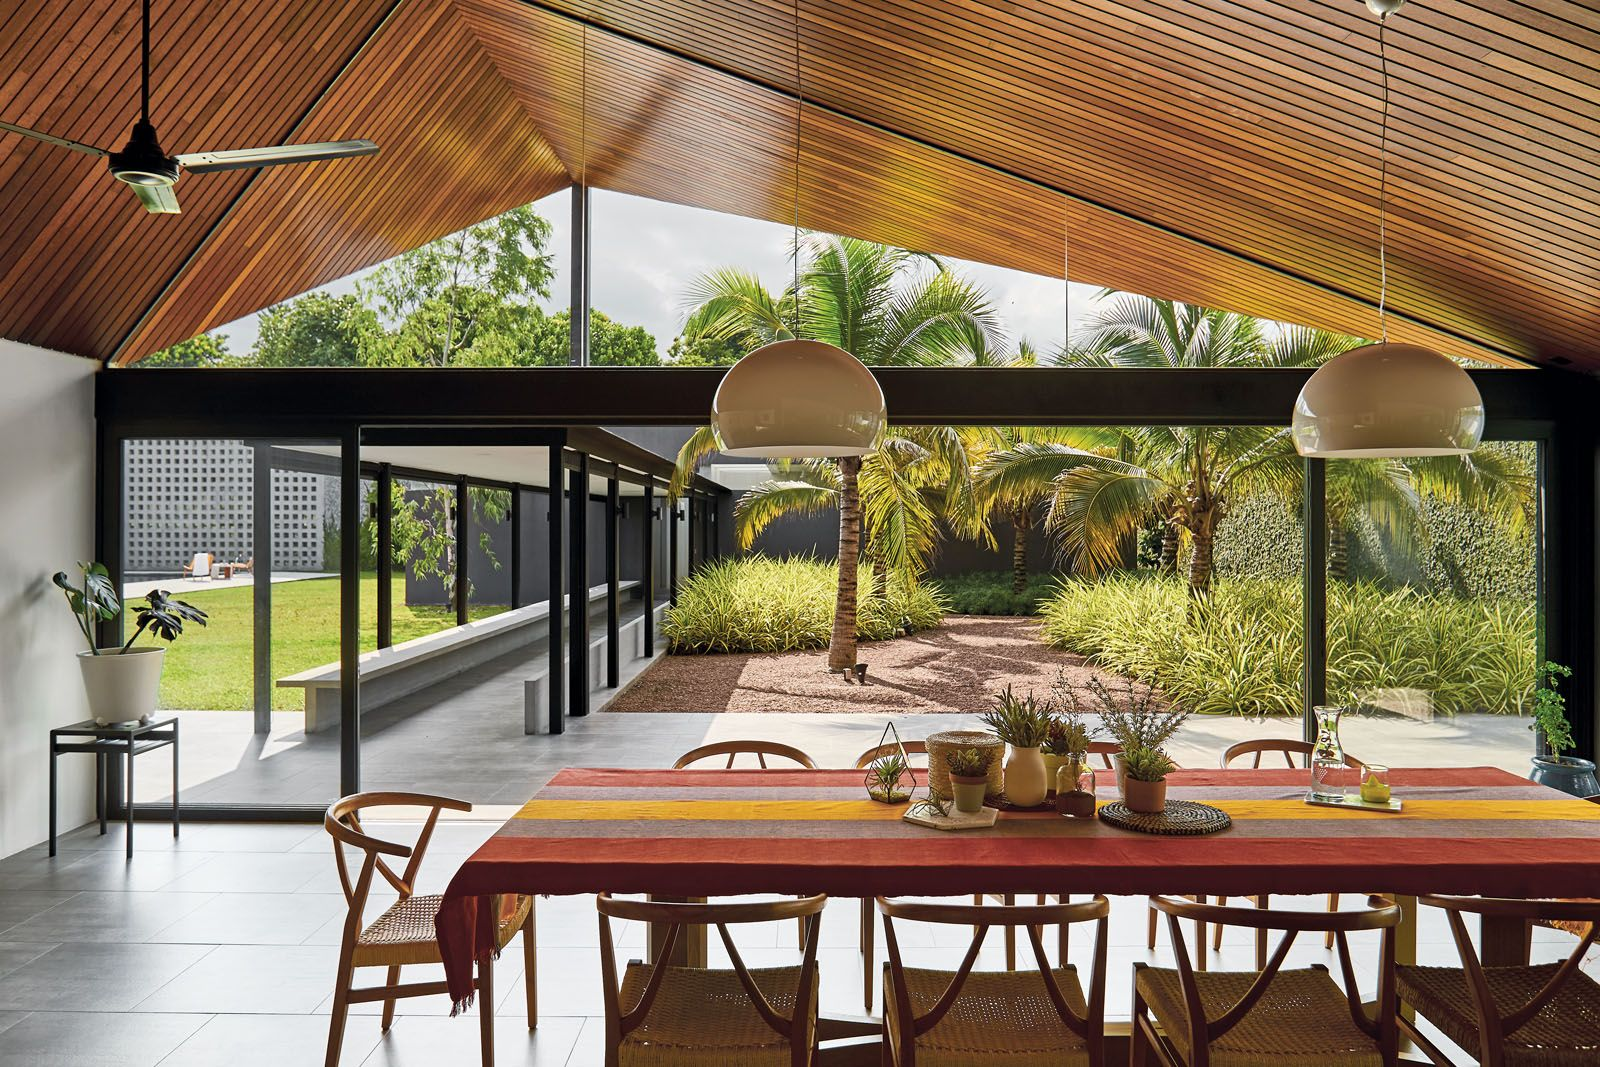 The dining area features a row of Kartell FL/Y pendant lights that float above the wooden furnishings